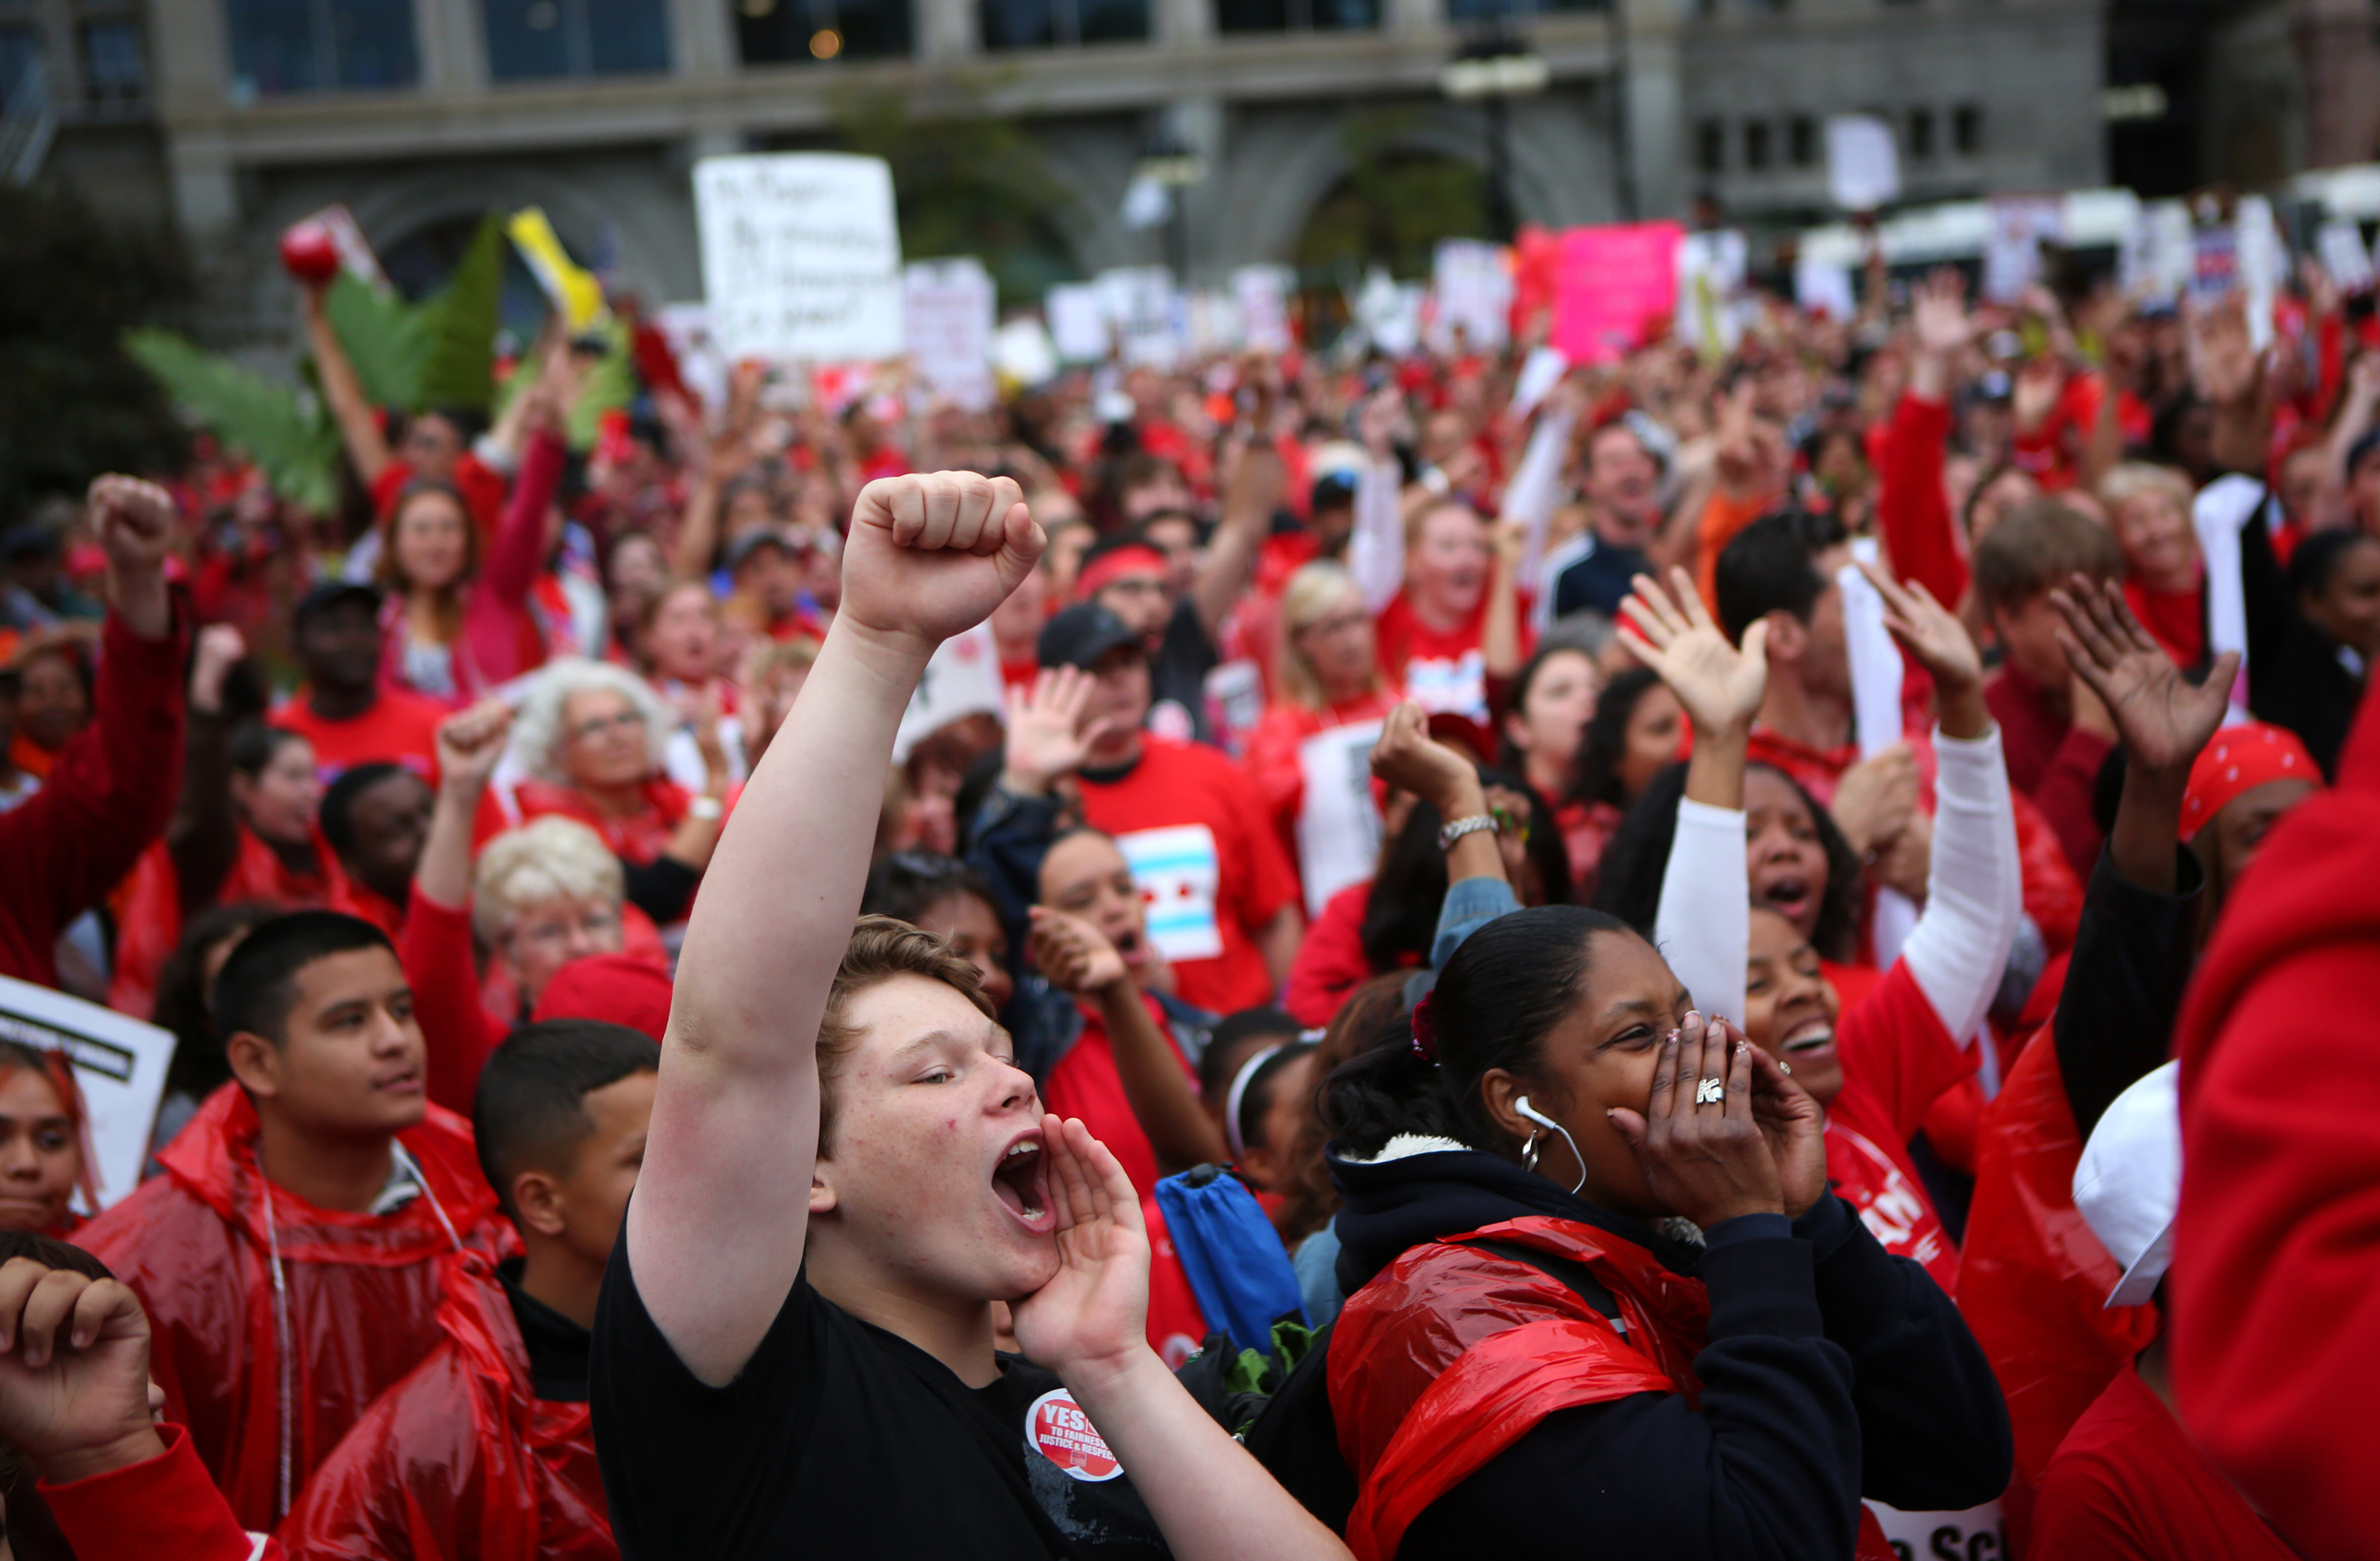 Chicago Teachers Union members and supporters, including some students, rally in Congress Plaza on Michigan Avenue in downtown Chicago, Illinois, Thursday, September 13, 2012. (E. Jason Wambsgans/Chicago Tribune/MCT)